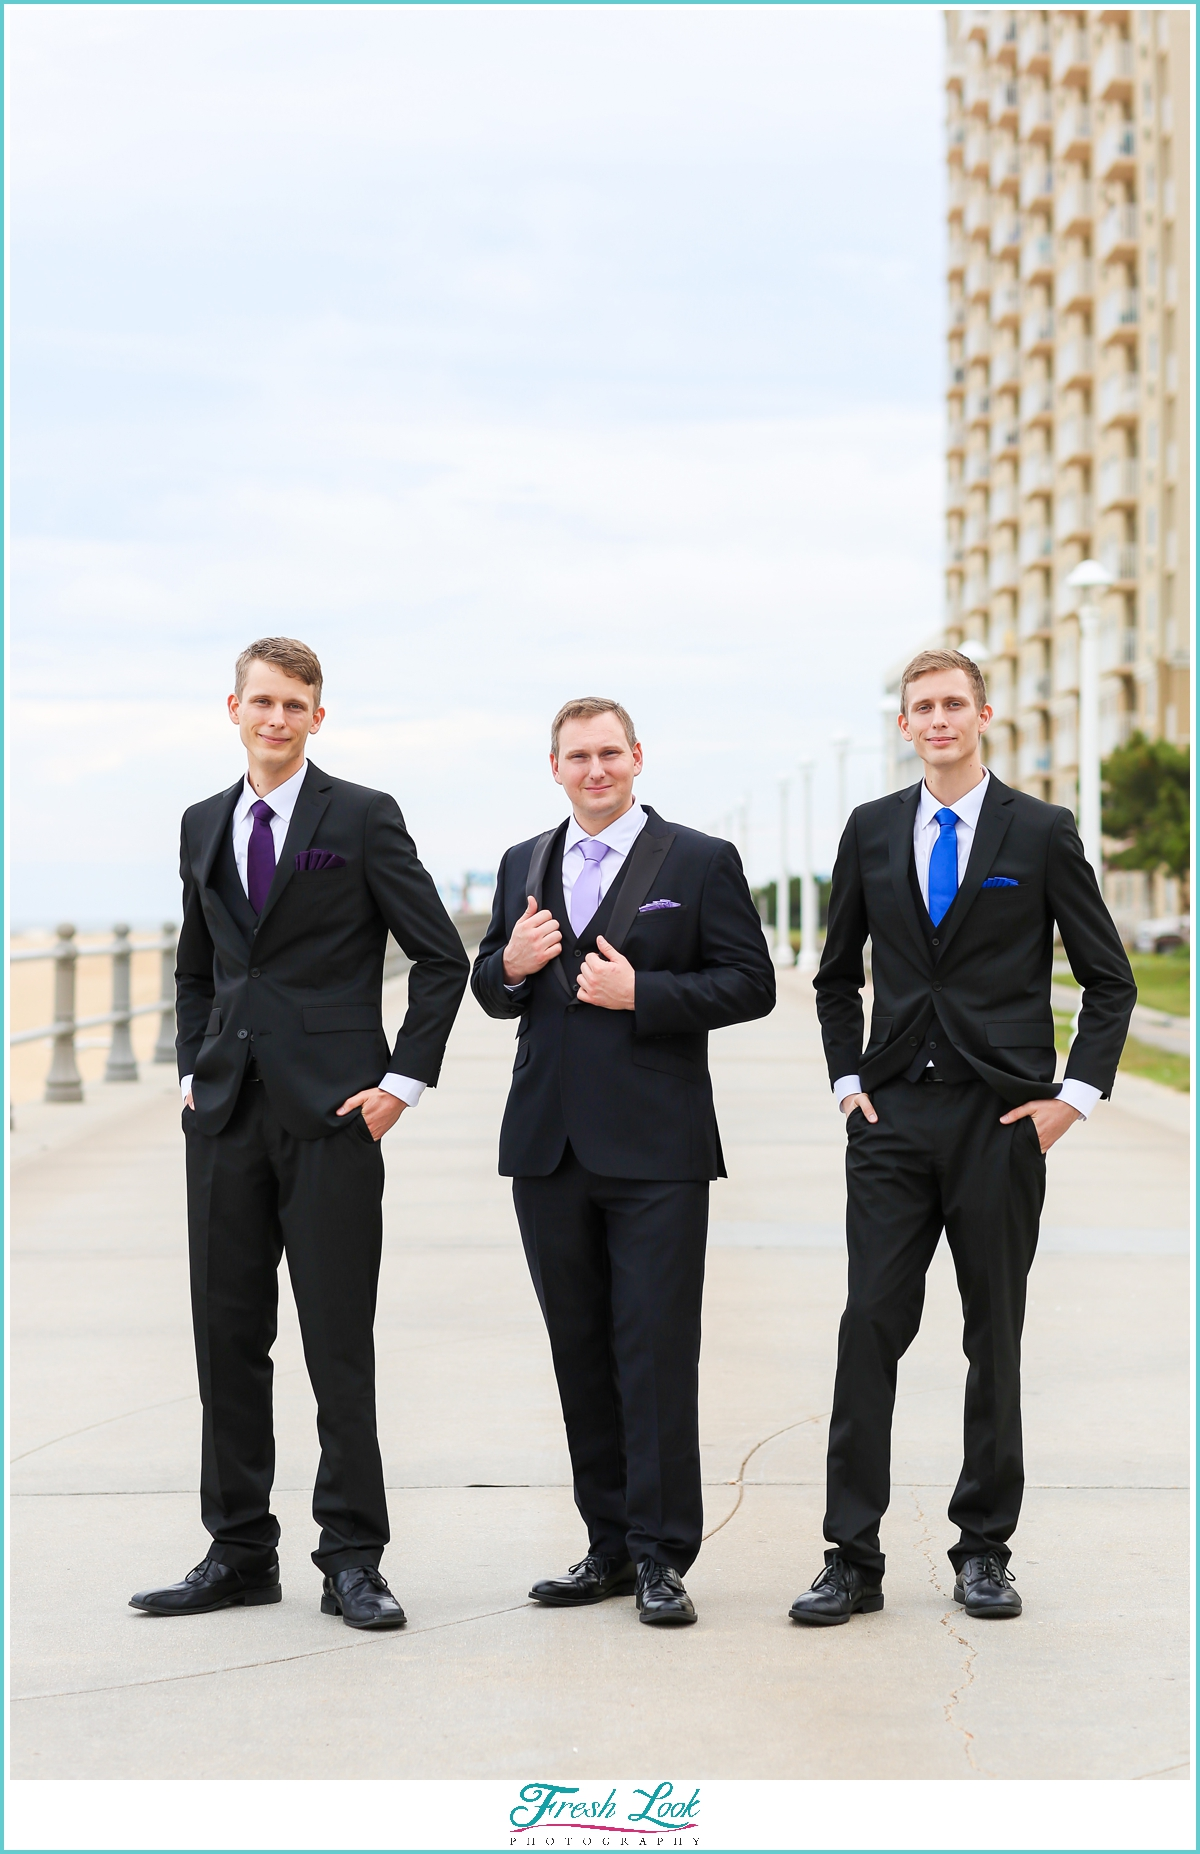 handsome groom and groomsmen wearing suits